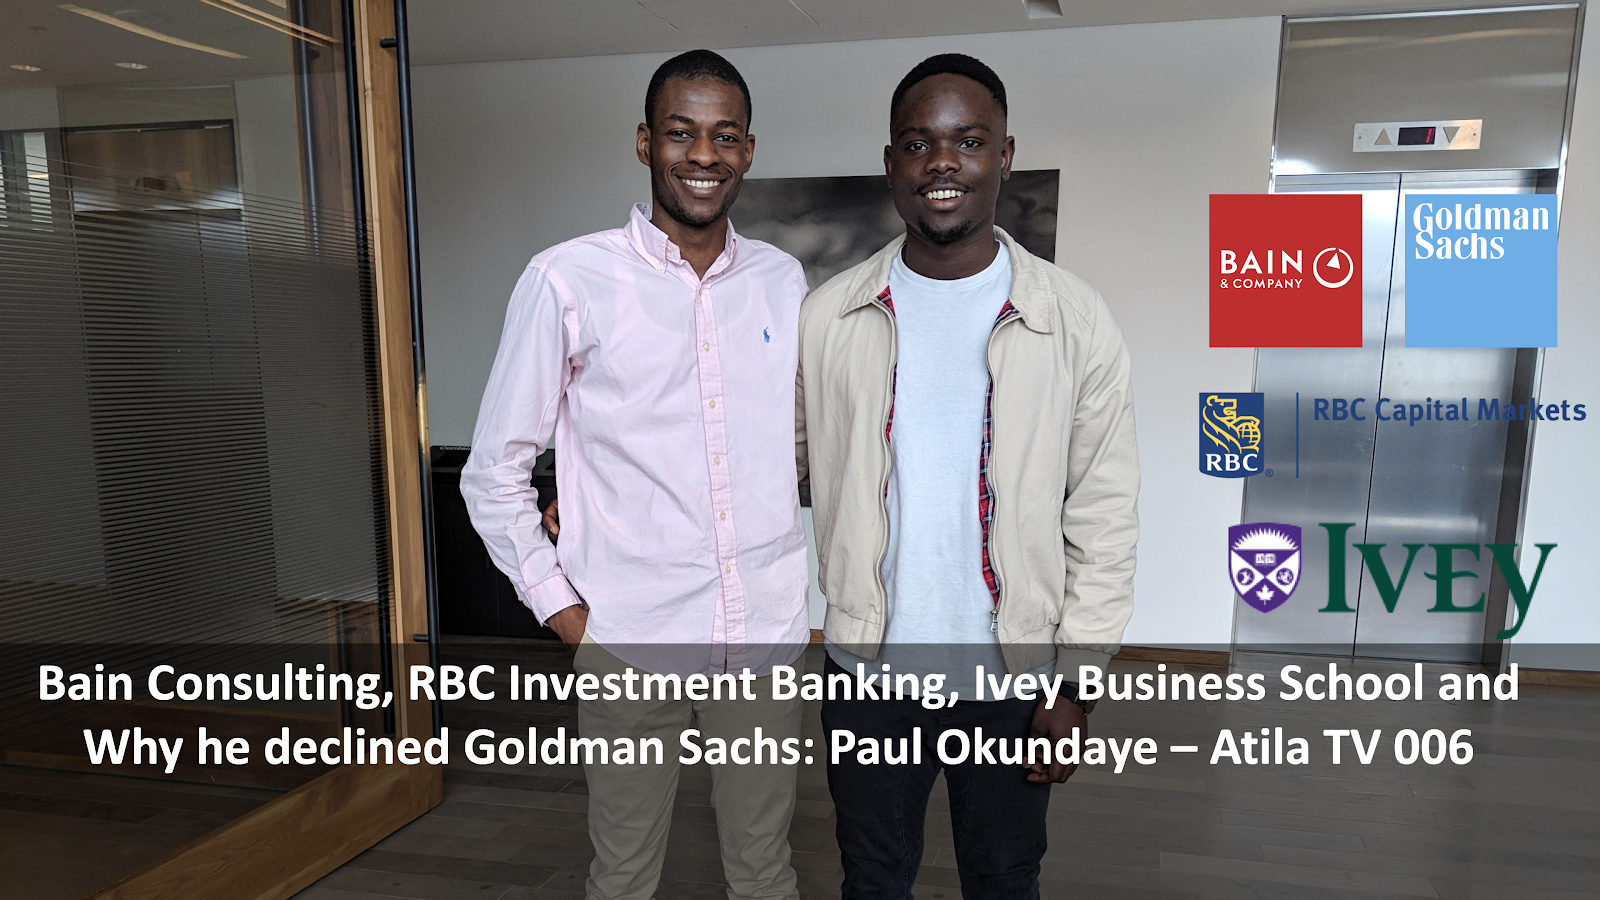 Rbc capital markets investment banking analyst porsche kaplan sterling investments locations for bank